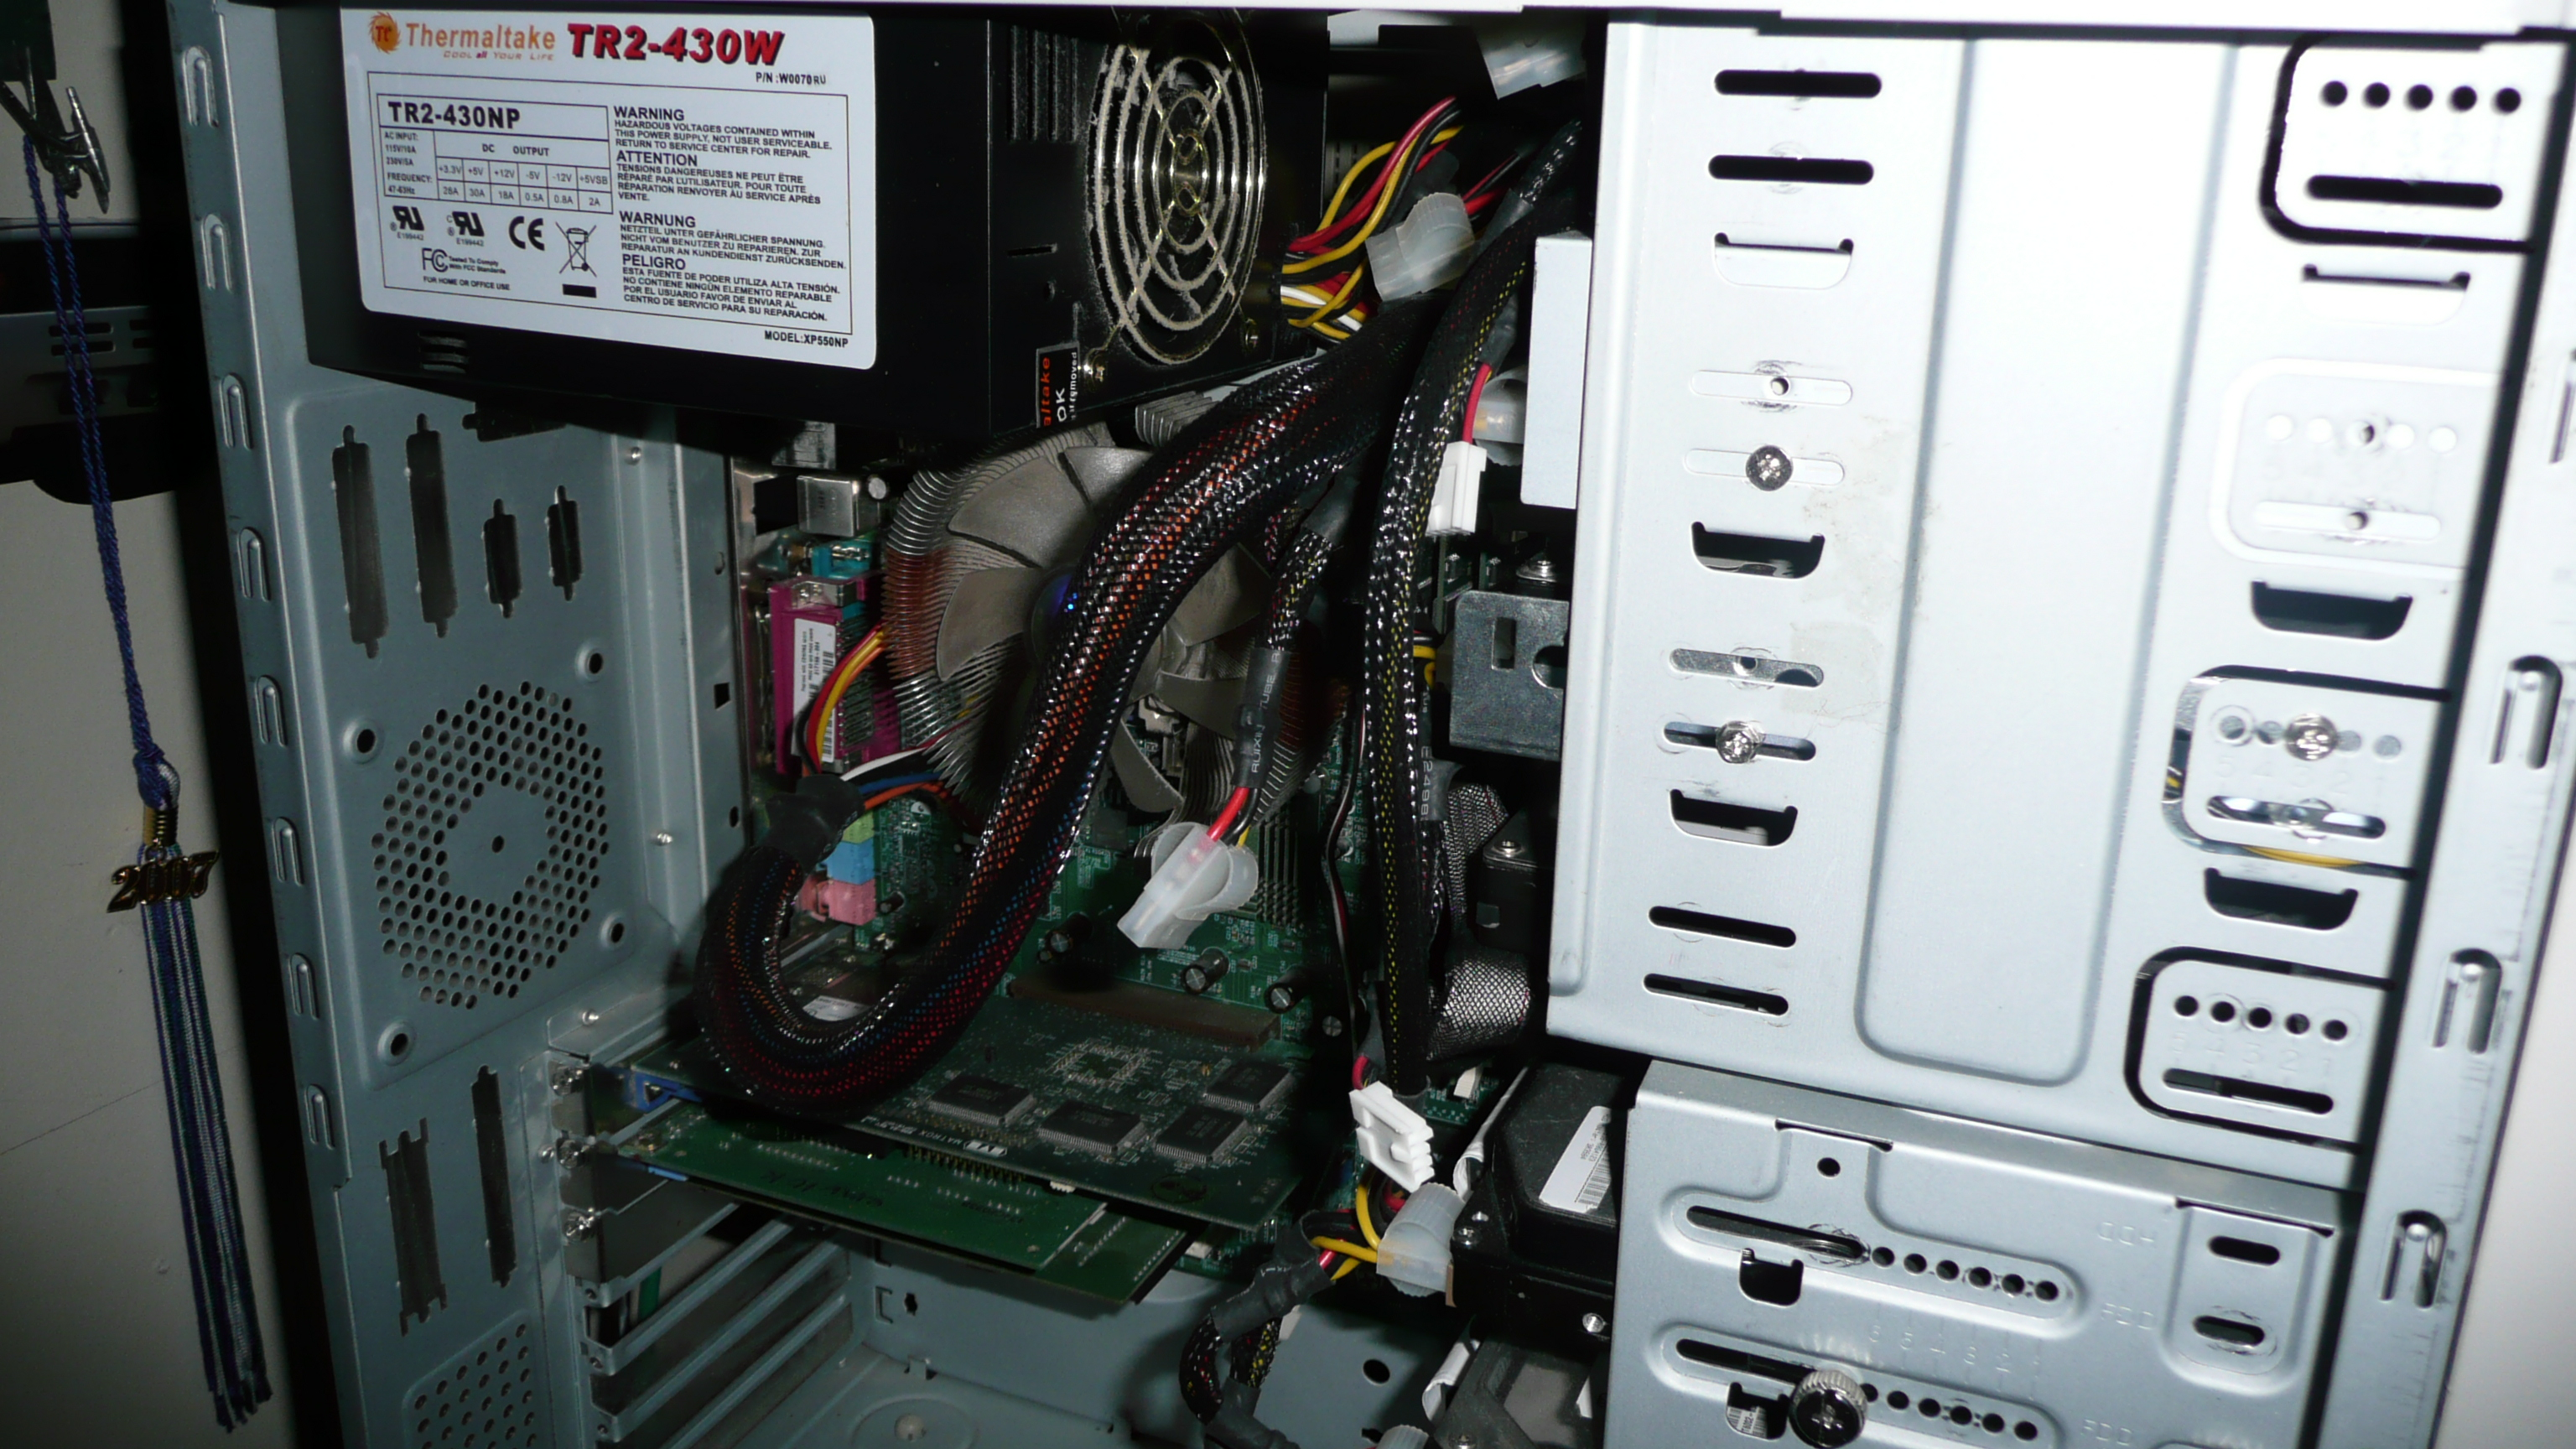 Power Supply Unit Computer Atx 24 Pin Wiring Diagram A Typical Installation Of An Form Factor